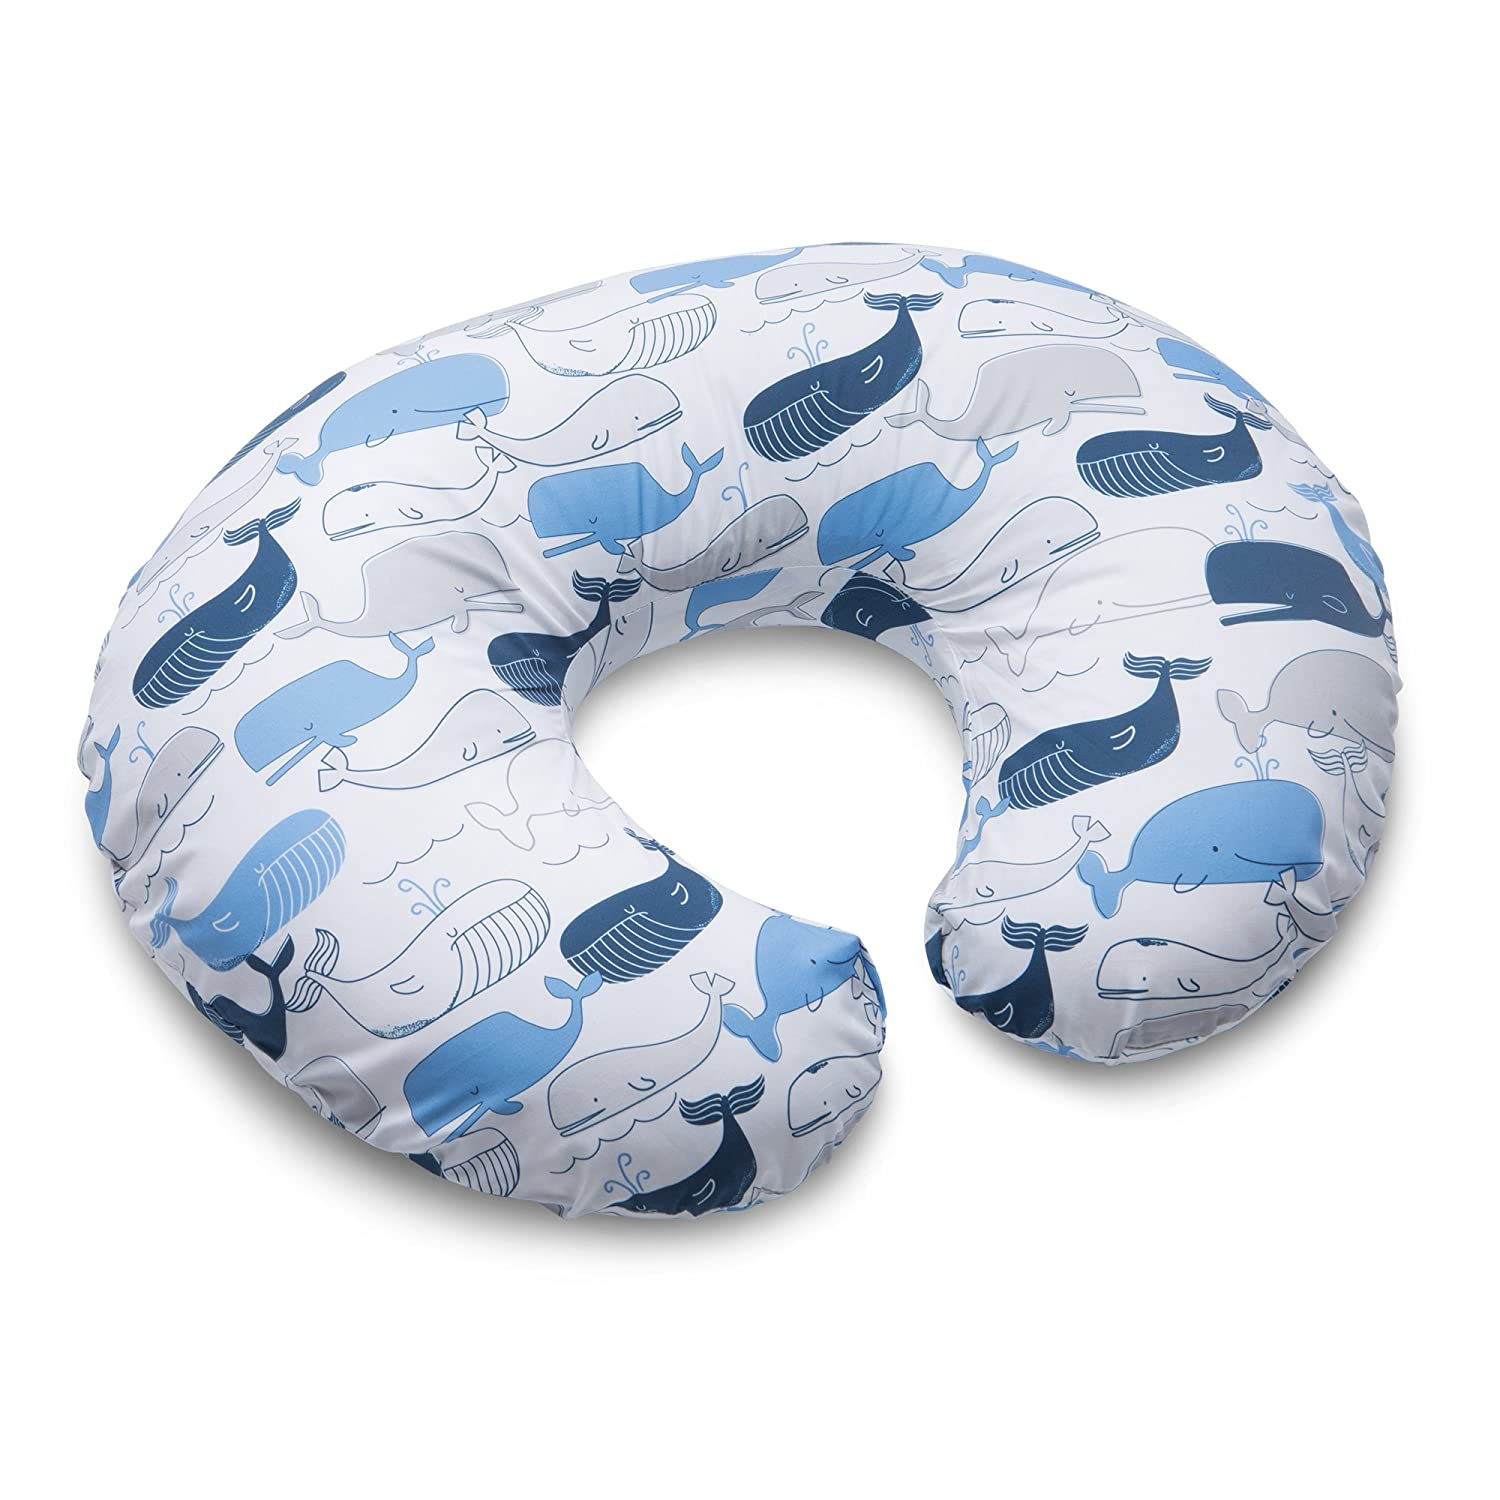 Boppy Nursing Pillow and Positioner, Big Whales, Blue 2200151K AMC